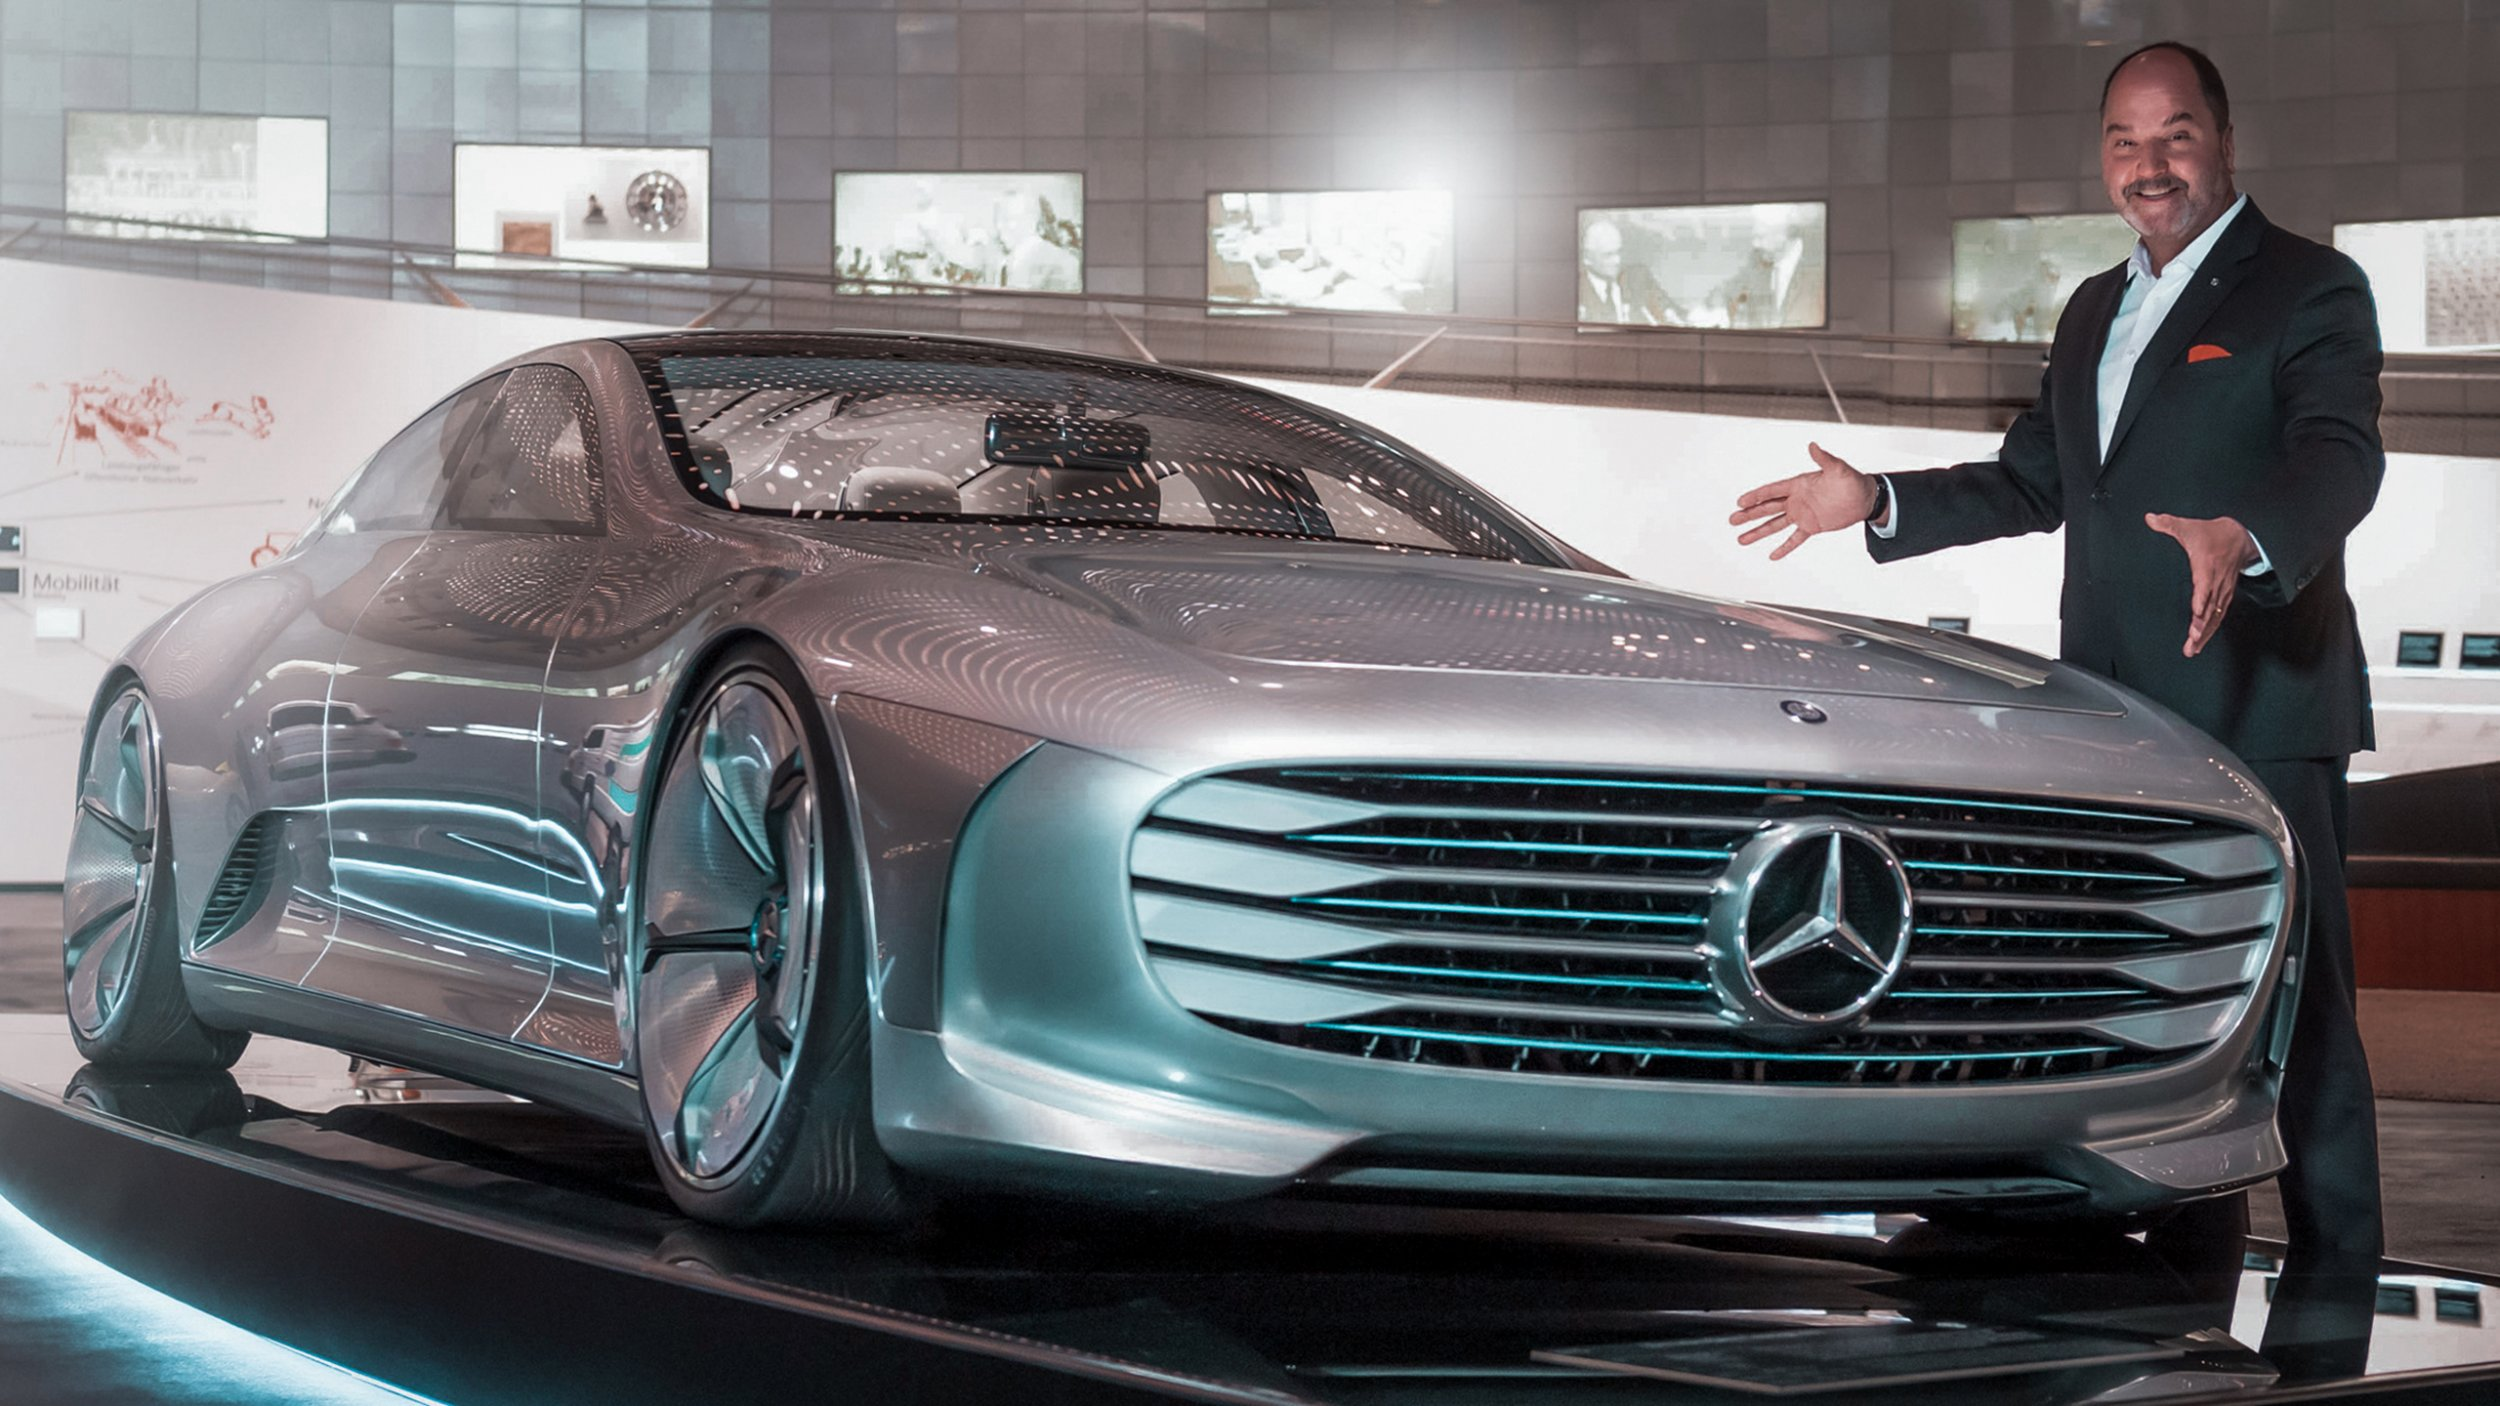 https://cdn1-cloud.mb-lounge.com/files/HQ-Events/Classic/Museum/01-mercedes-benz-museum-special-guided-tours-future-of-mobility-v2-2560x1440.jpg